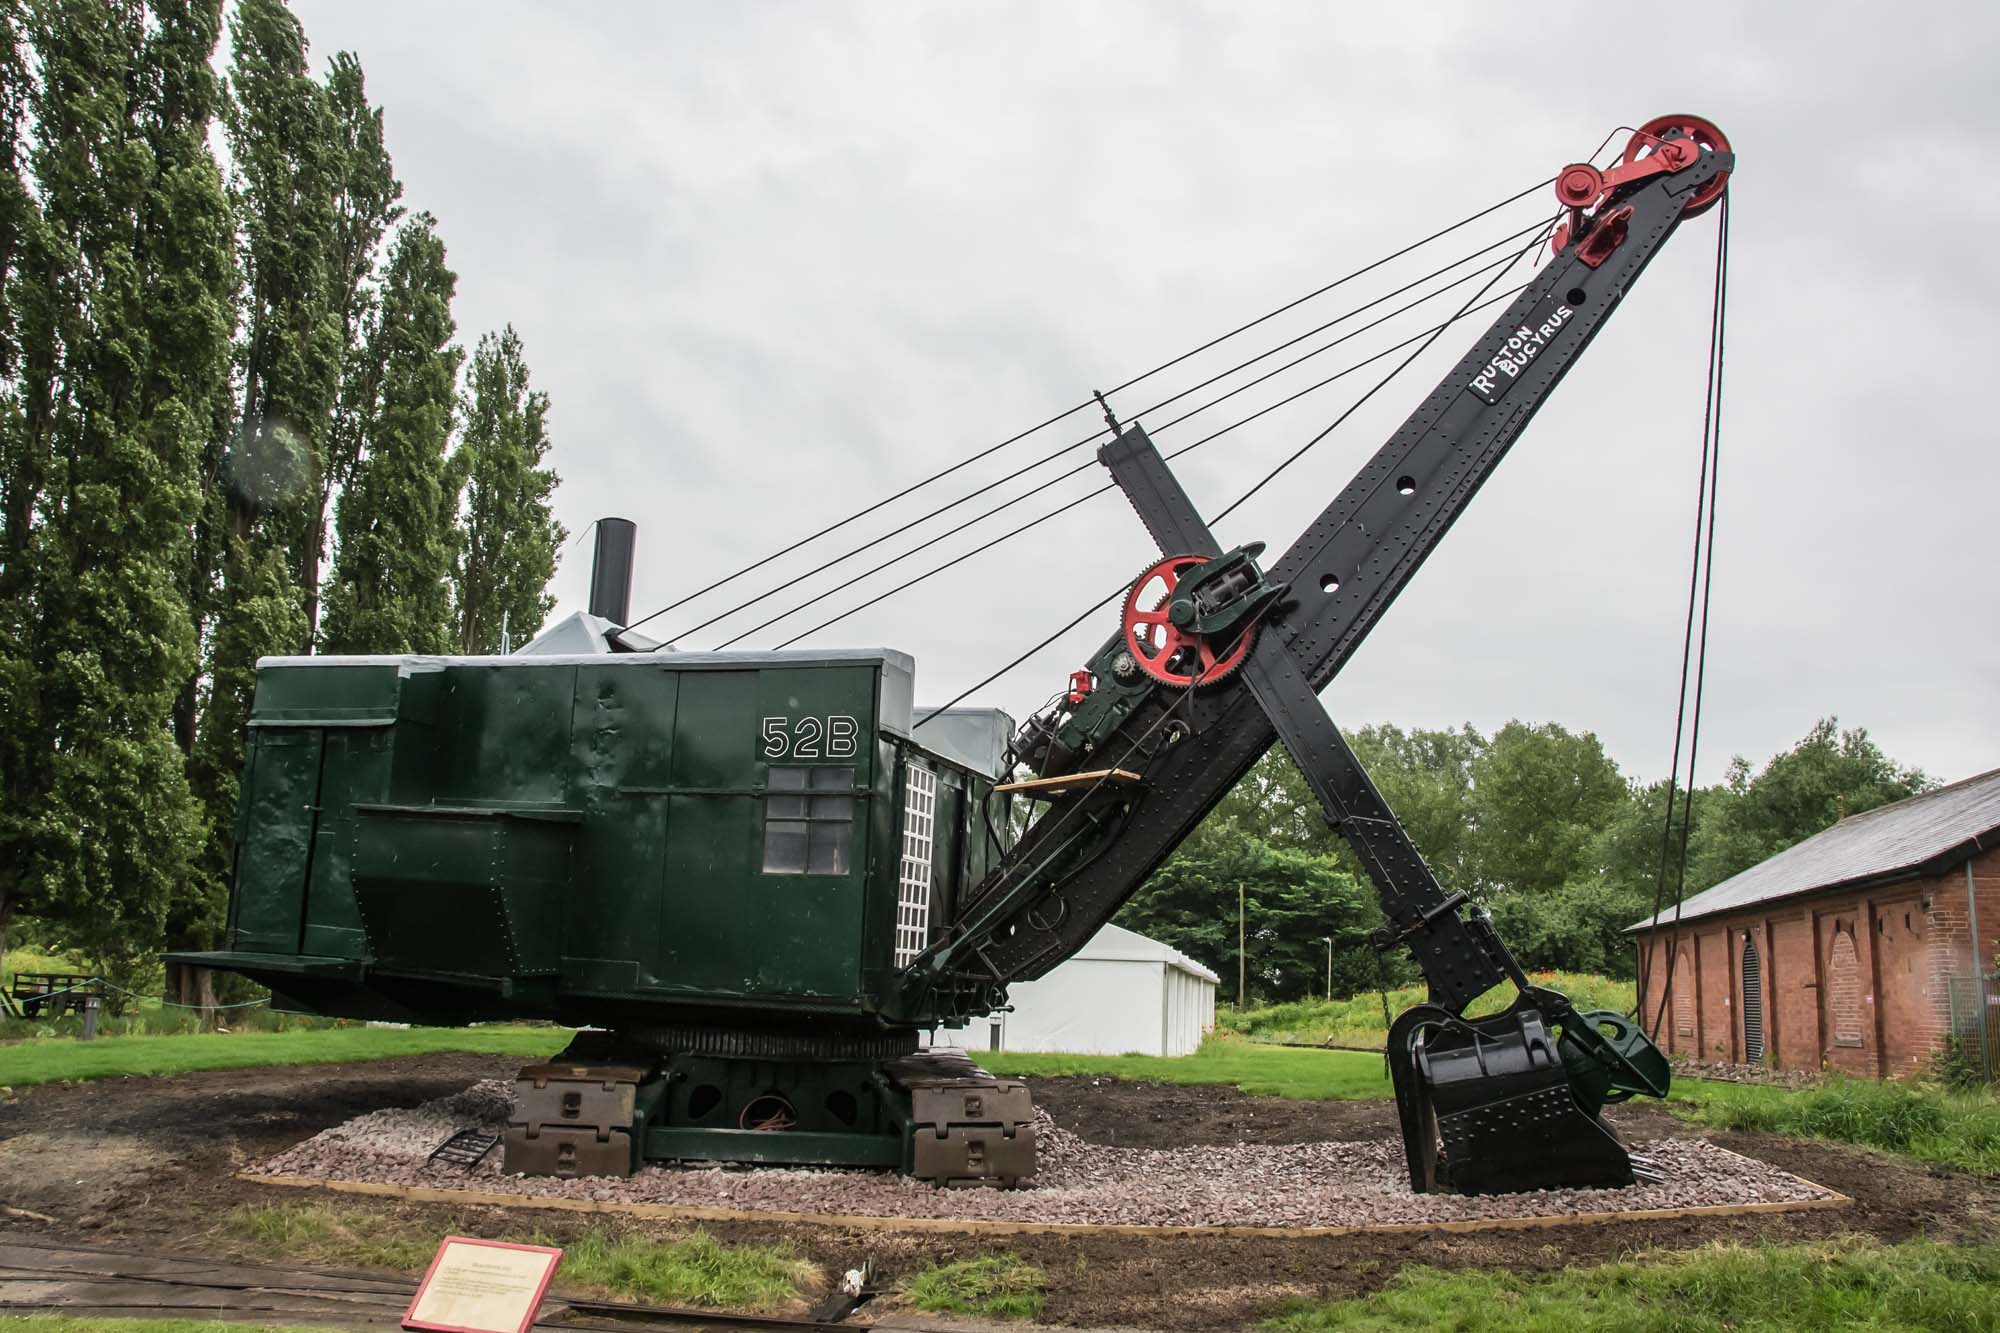 You can see this beautifully restored steam shovel in the grounds of the museum -